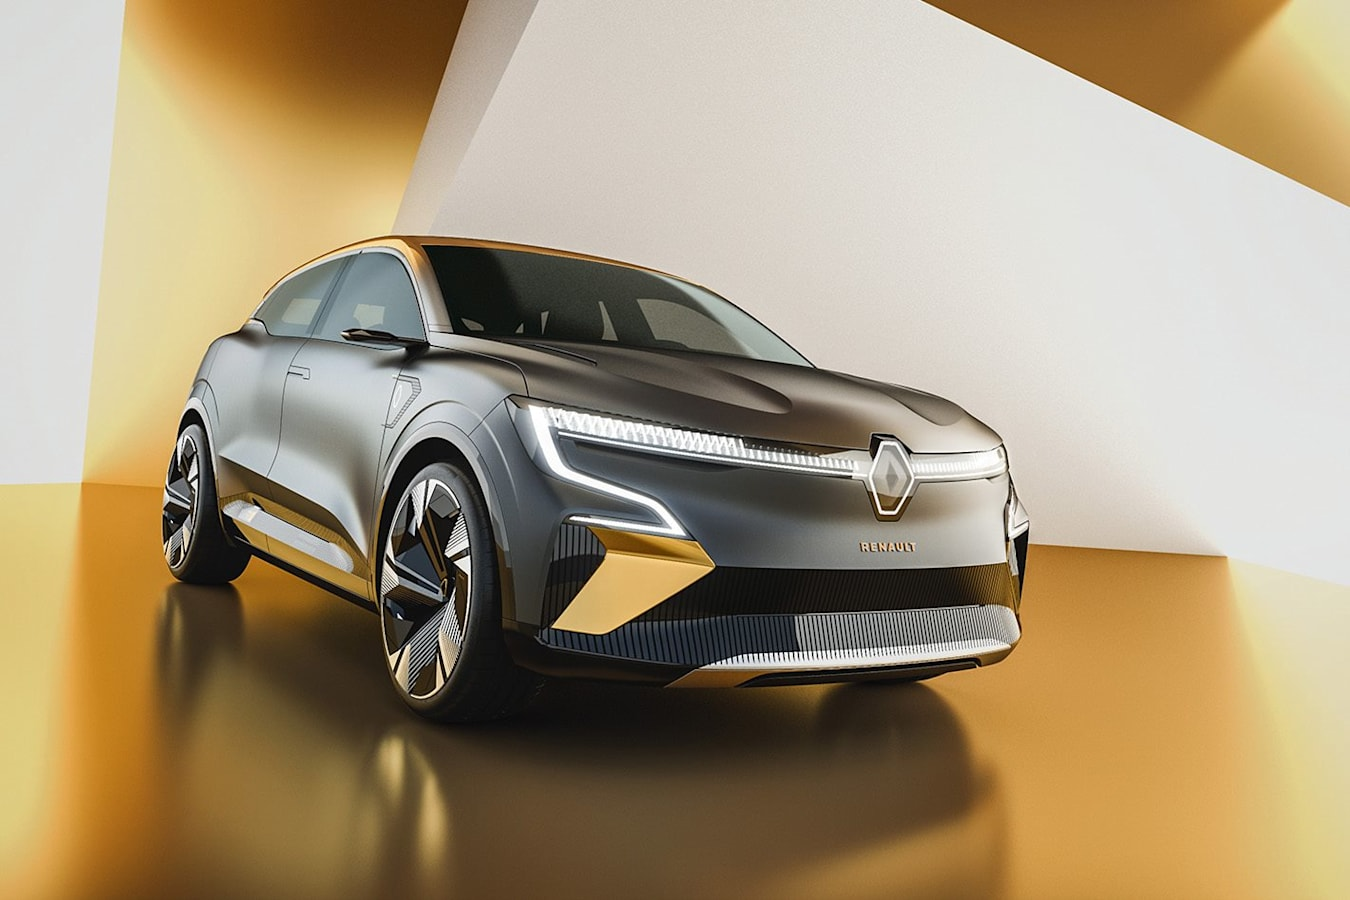 Archive Whichcar 2021 03 13 Misc Renault Megane Evision Concept